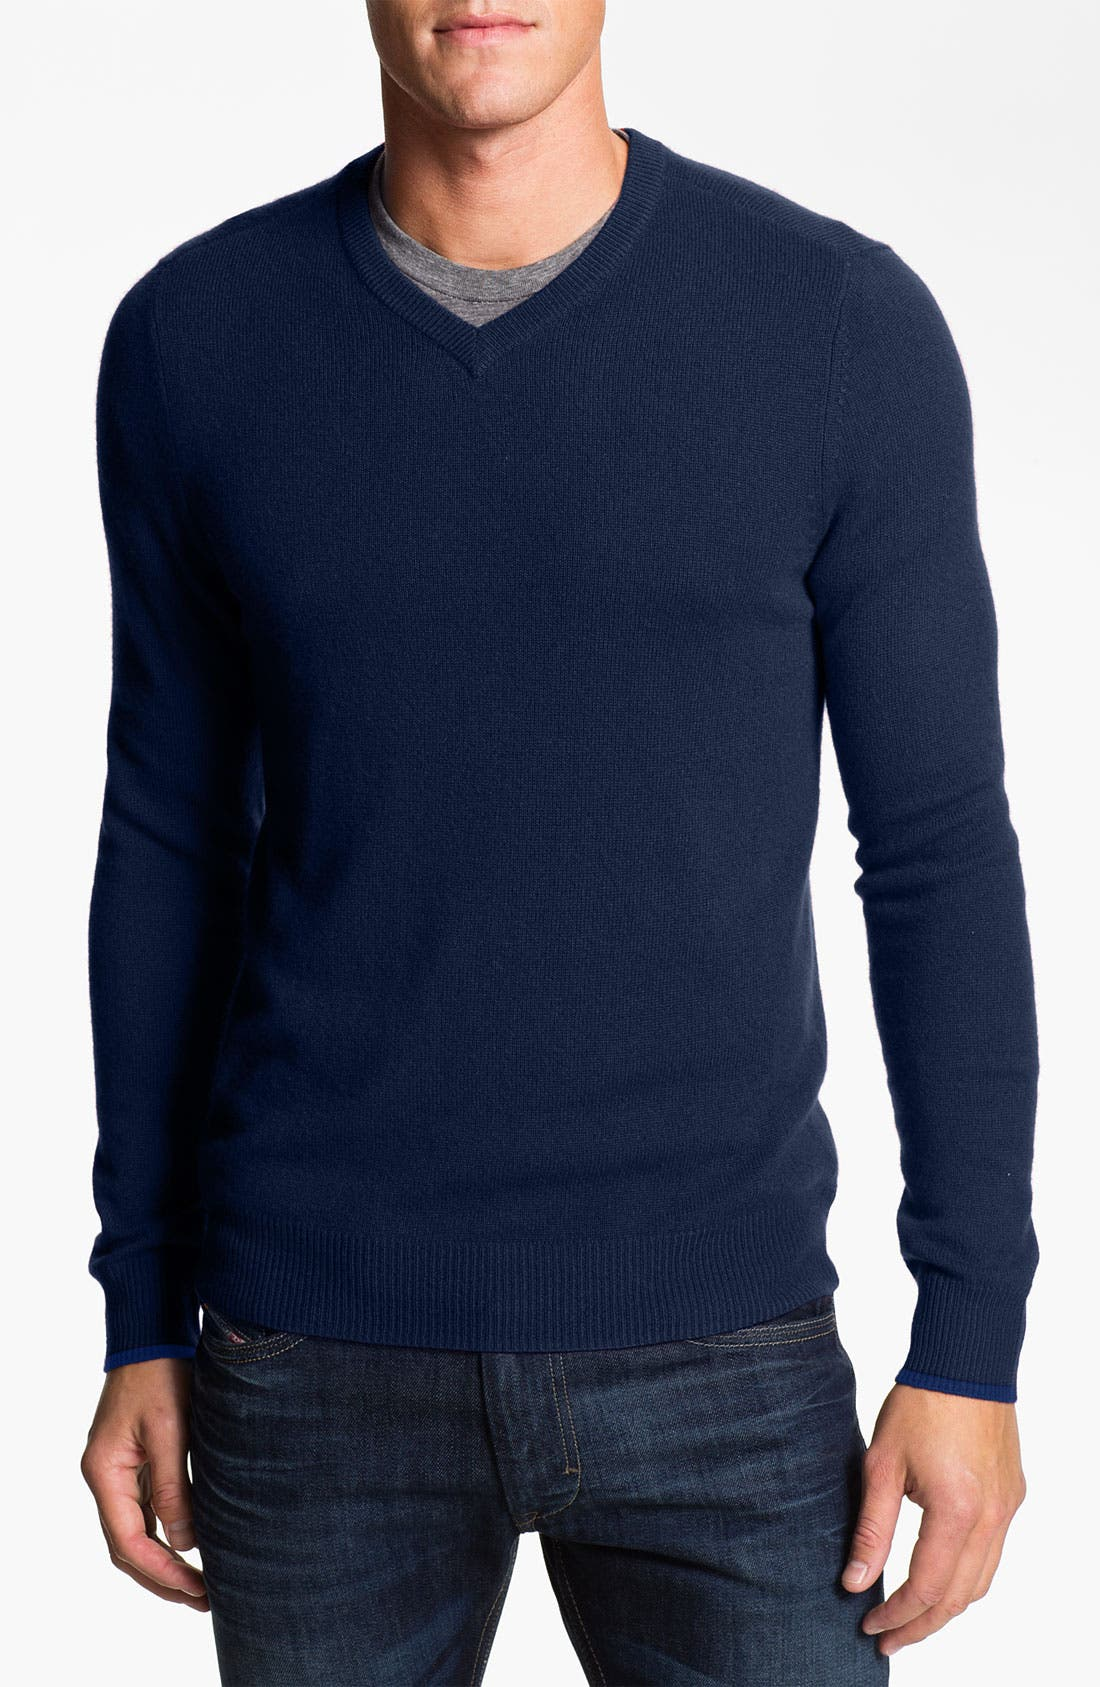 Alternate Image 1 Selected - 1901 Trim Fit V-Neck Cashmere Sweater